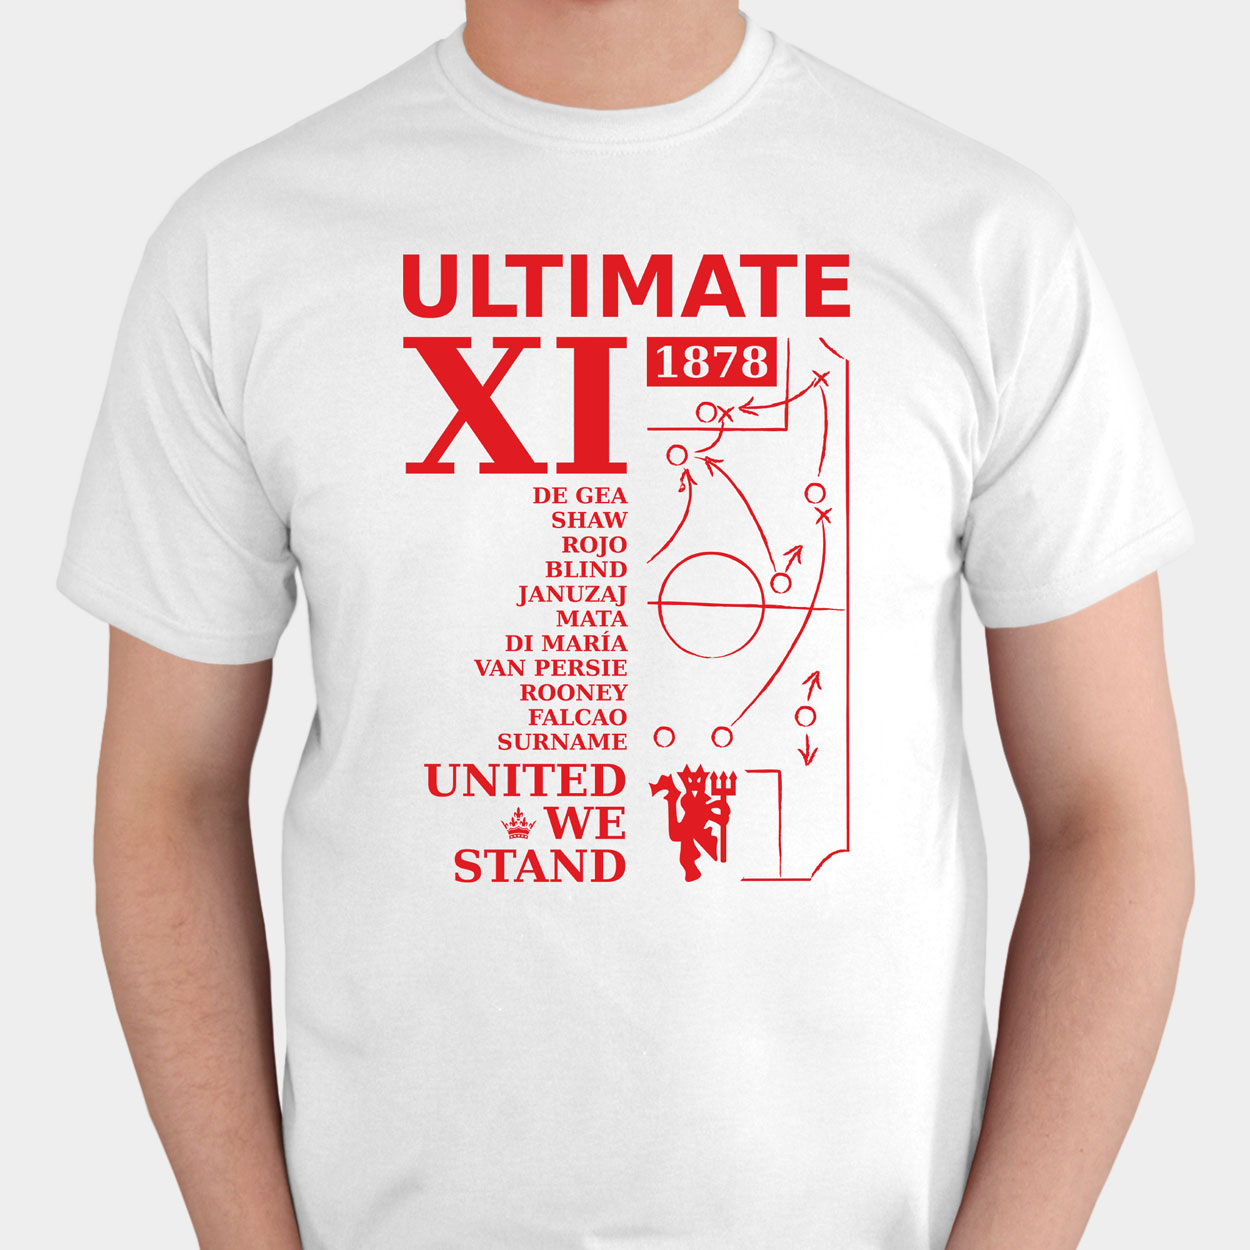 Manchester United Personalised Ultimate XI T-shirt White